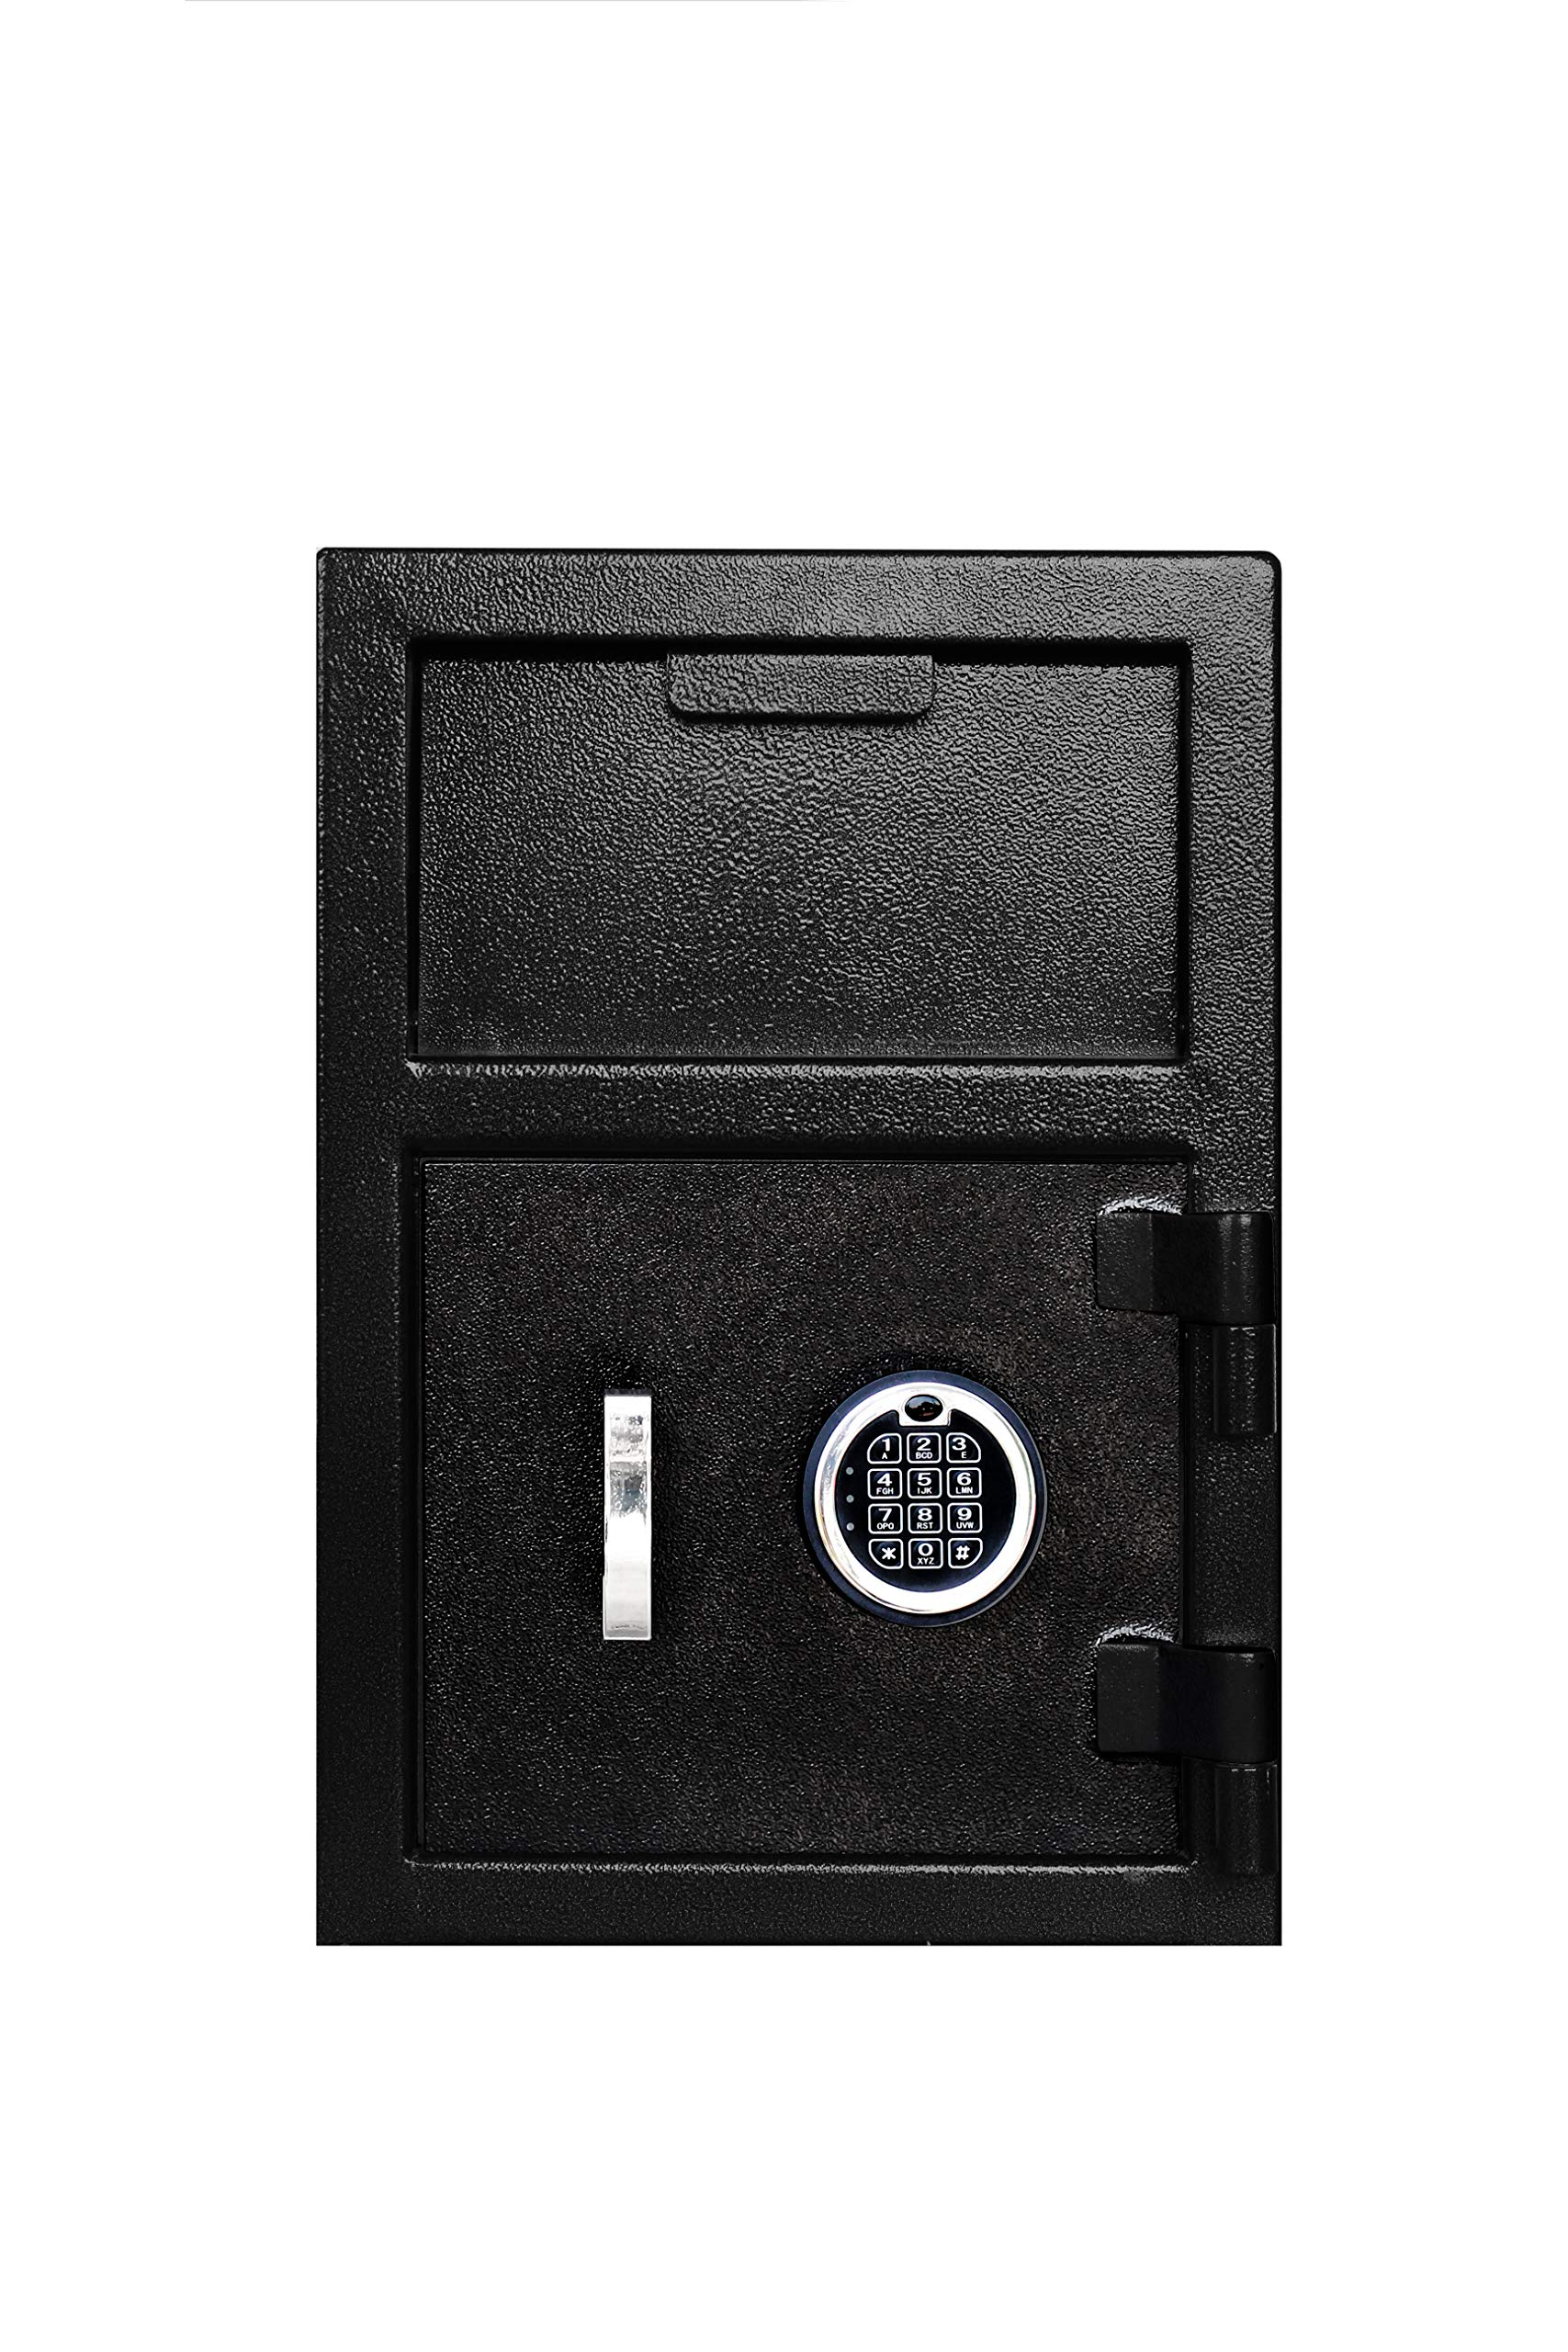 Templeton Standard Depository Safe - Electronic Keypad Combination & Key Backup by Templeton